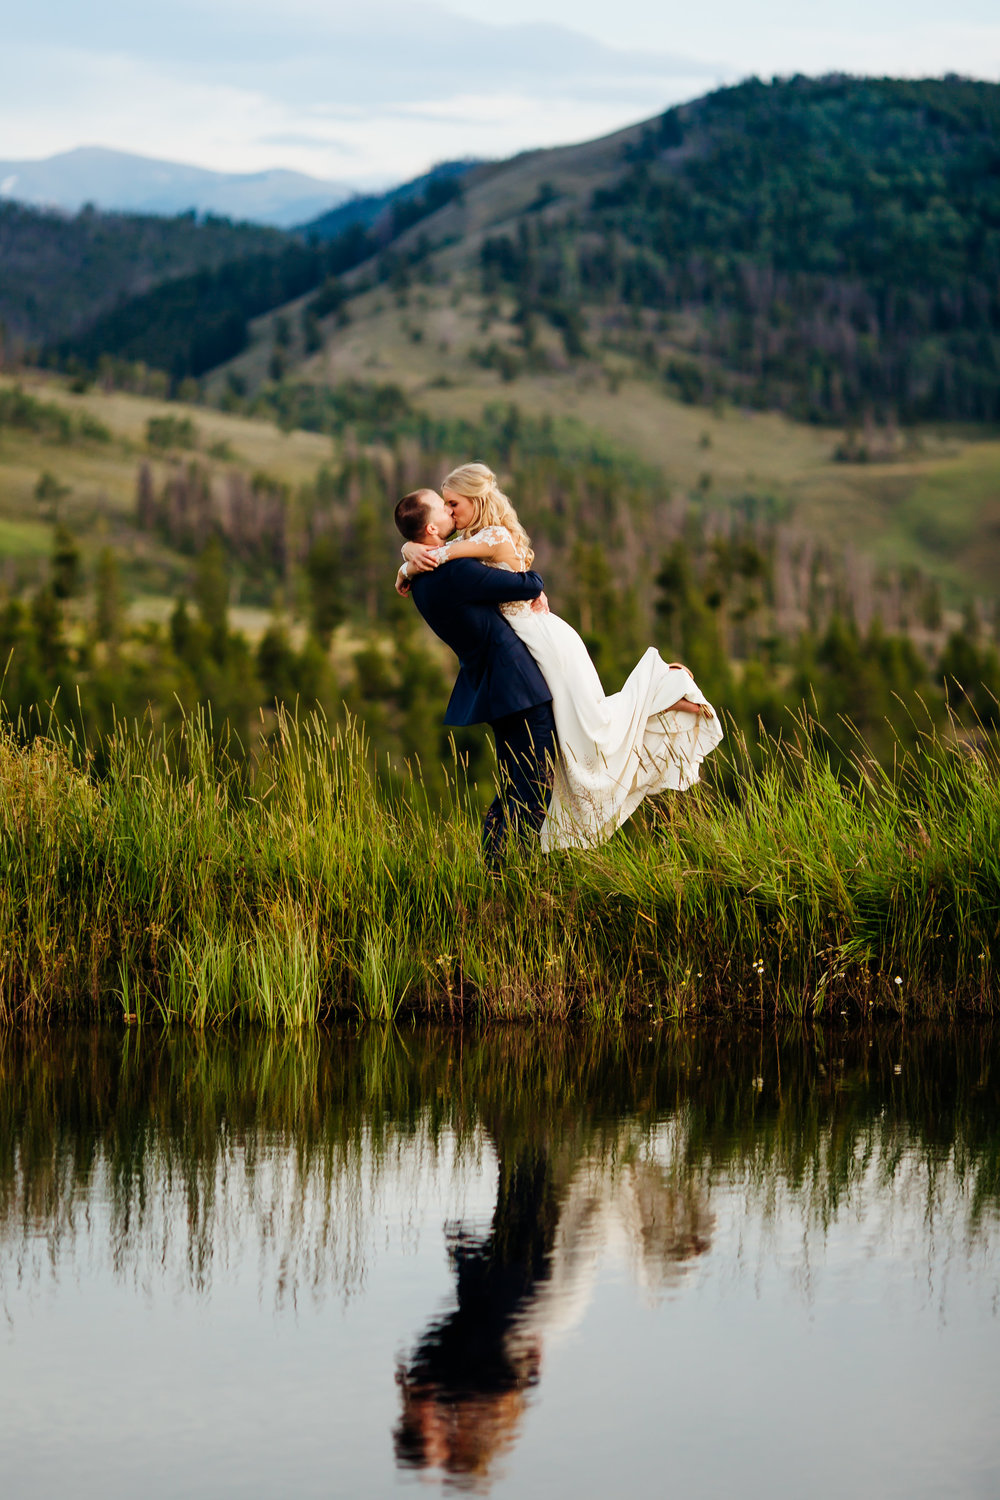 Evelyn_Andrew_BrideGroomPortraits-116.jpg